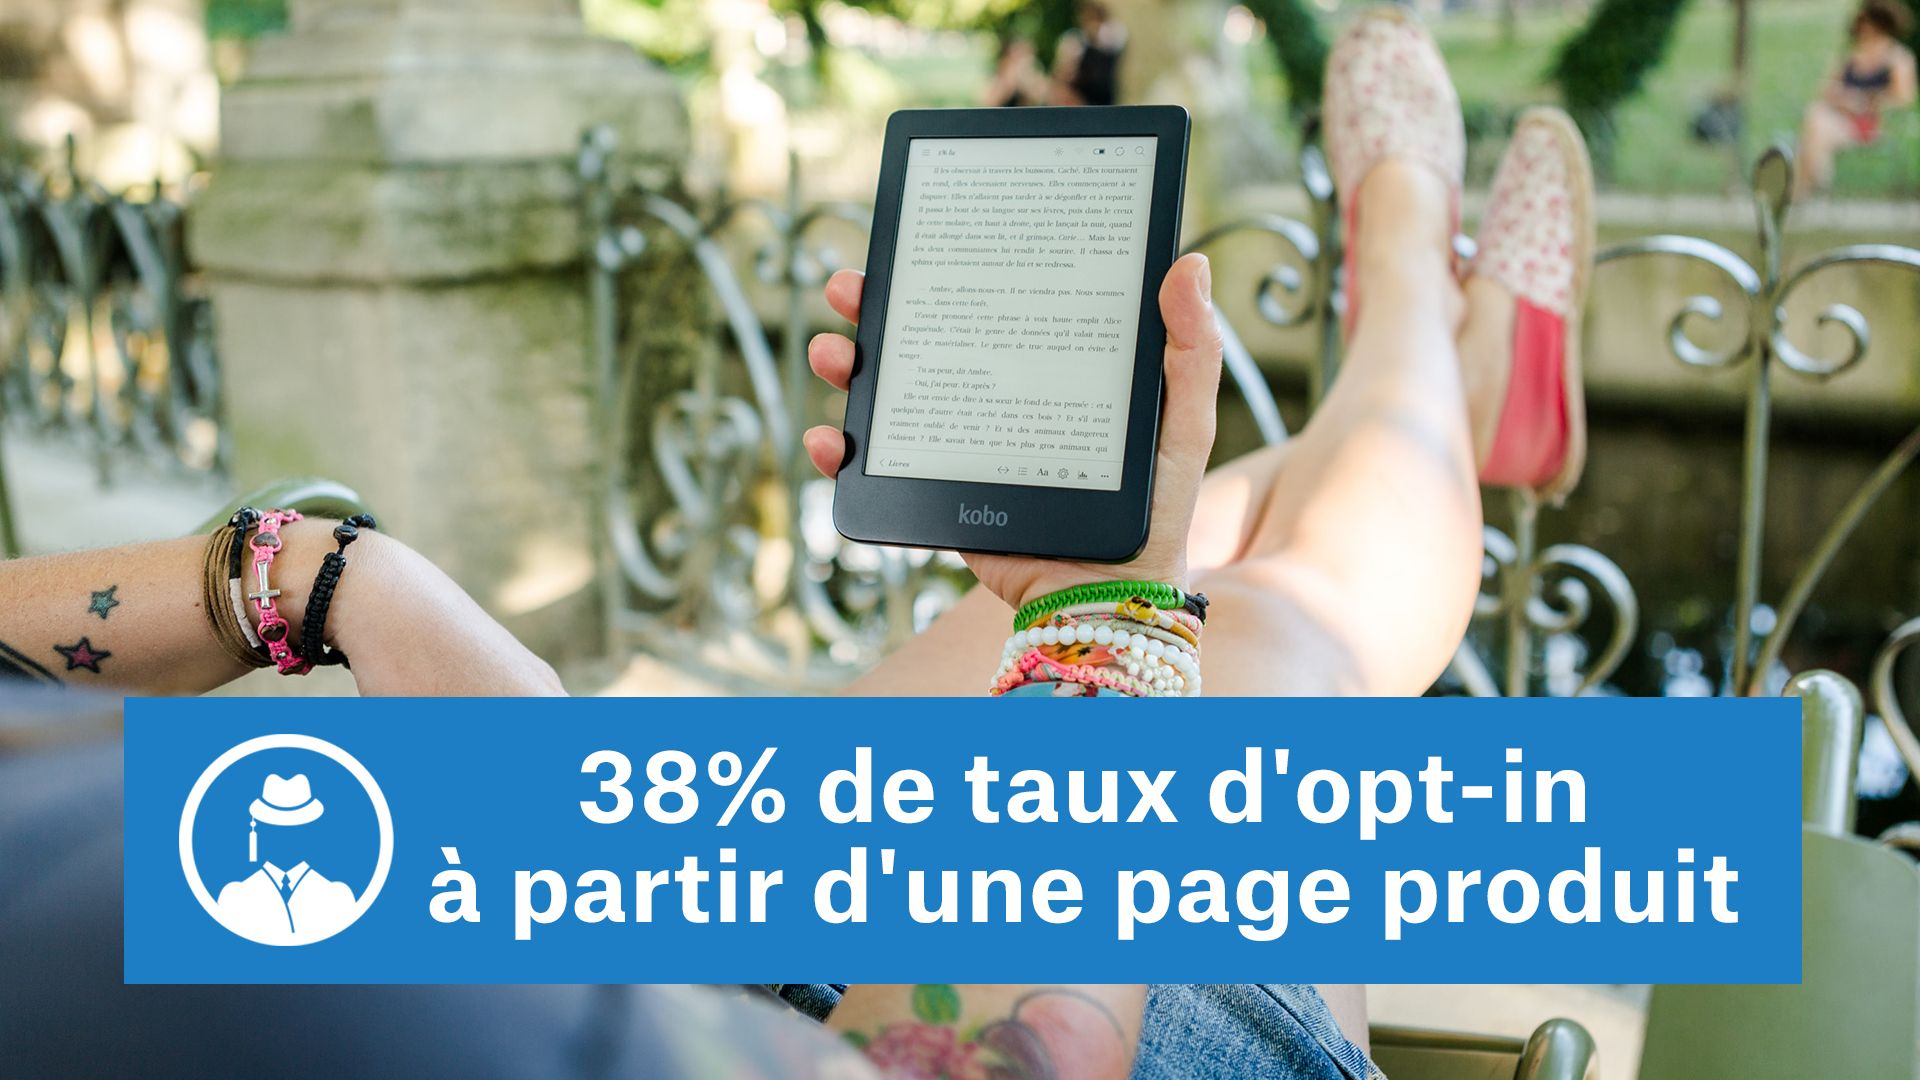 38% de taux d'opt-in à partir d'une page produit #GrowthHacking #WebMarketing #FormationGrowthHacking #CentreDeFormationFrance #TunnelAARRR #AARRR #SocialMedia #CommunityManagement #SEO #MarketingDigital #SiteWeb